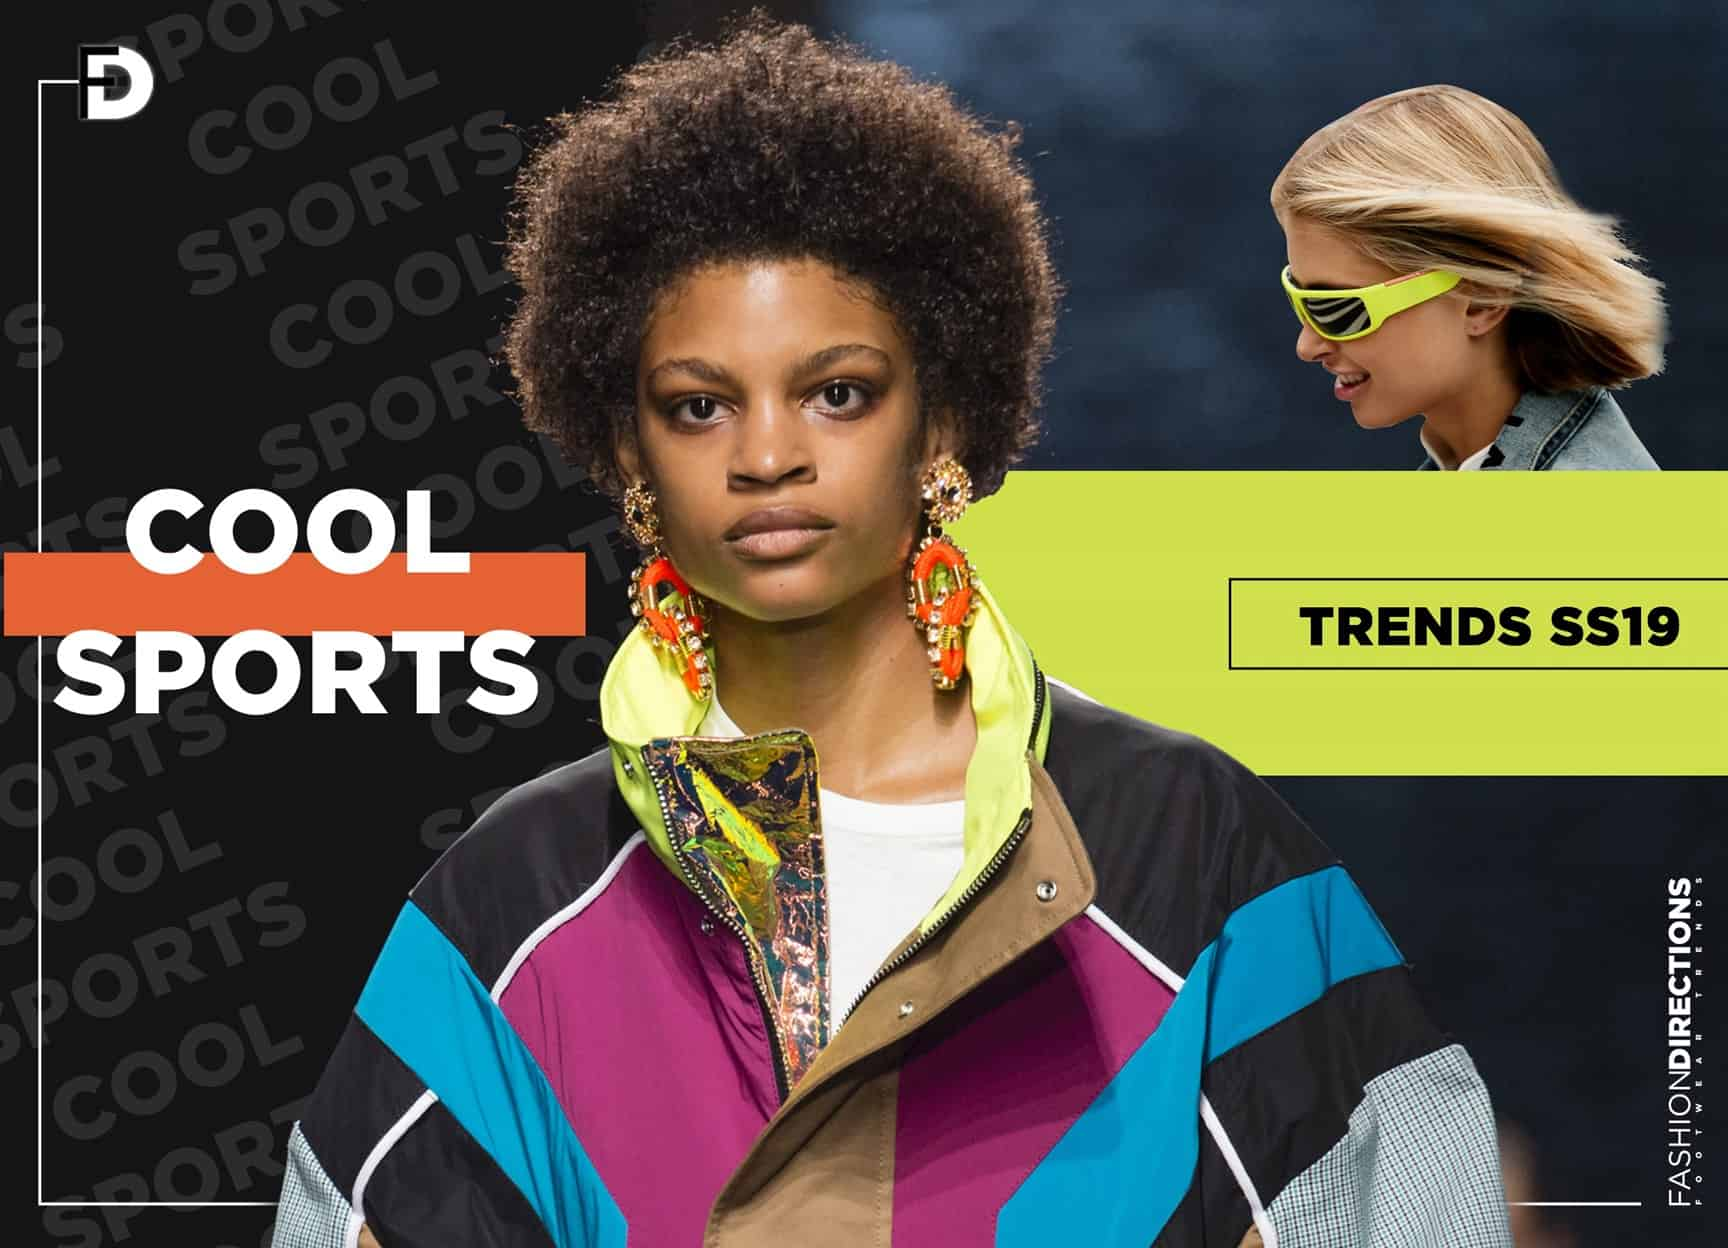 SS19 trends Cool sports